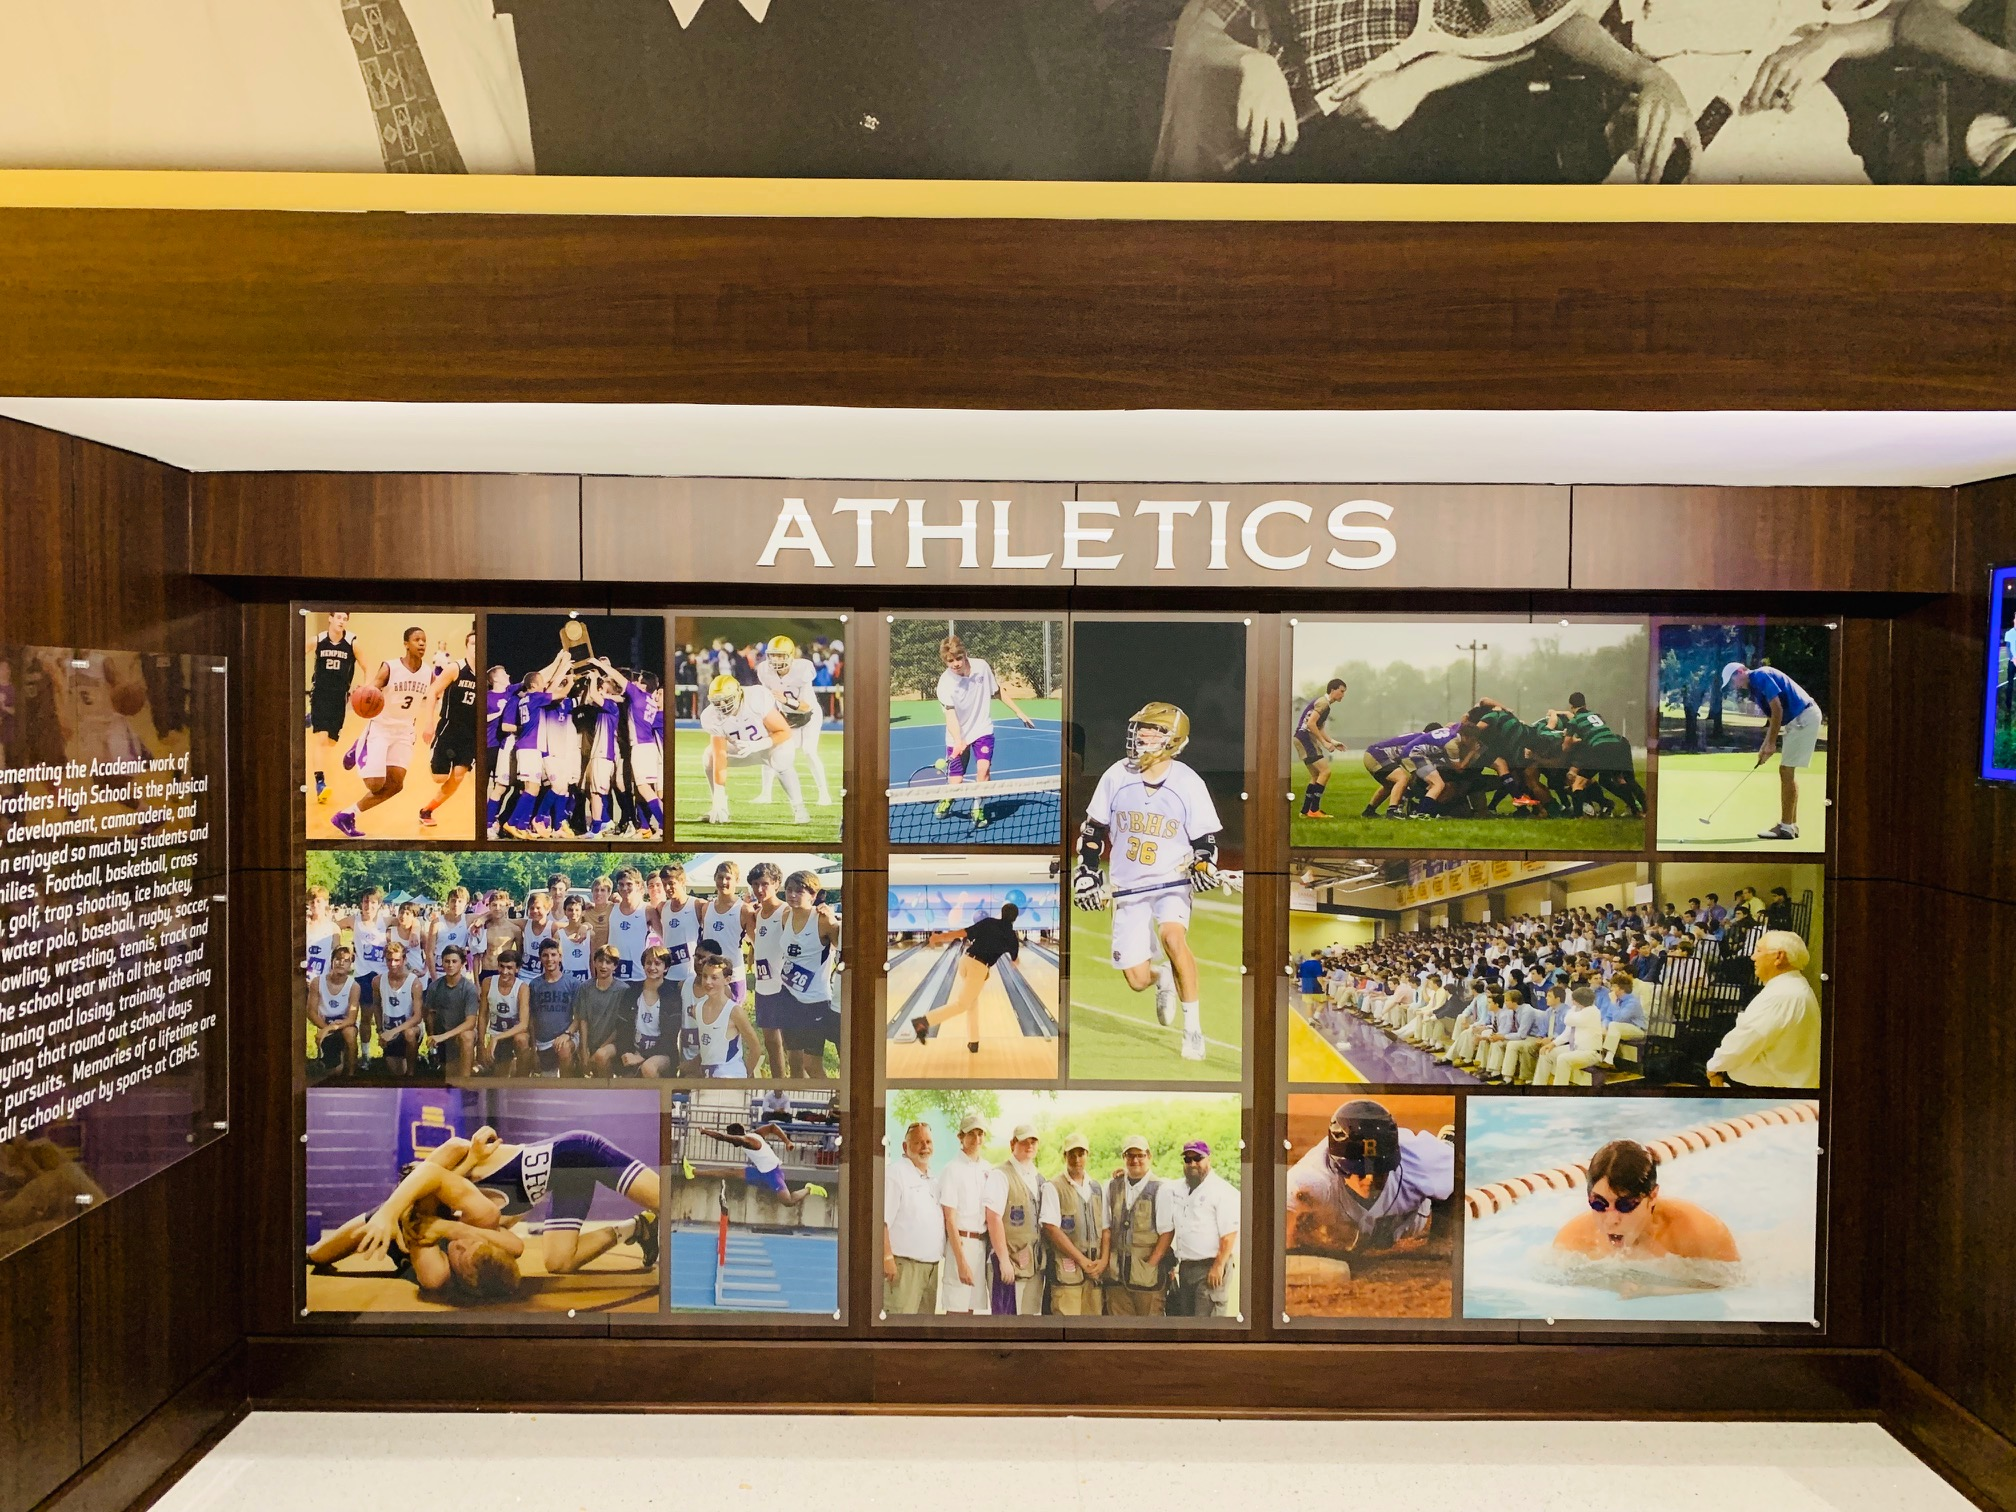 Christian-Brothers-High-School_Athletics_After-Renovation_Interior-Branding_Dimensional-Letters_Acrylic-Prints_Architectural-Surfaces_LSIGraphics_Memphis-TN ..